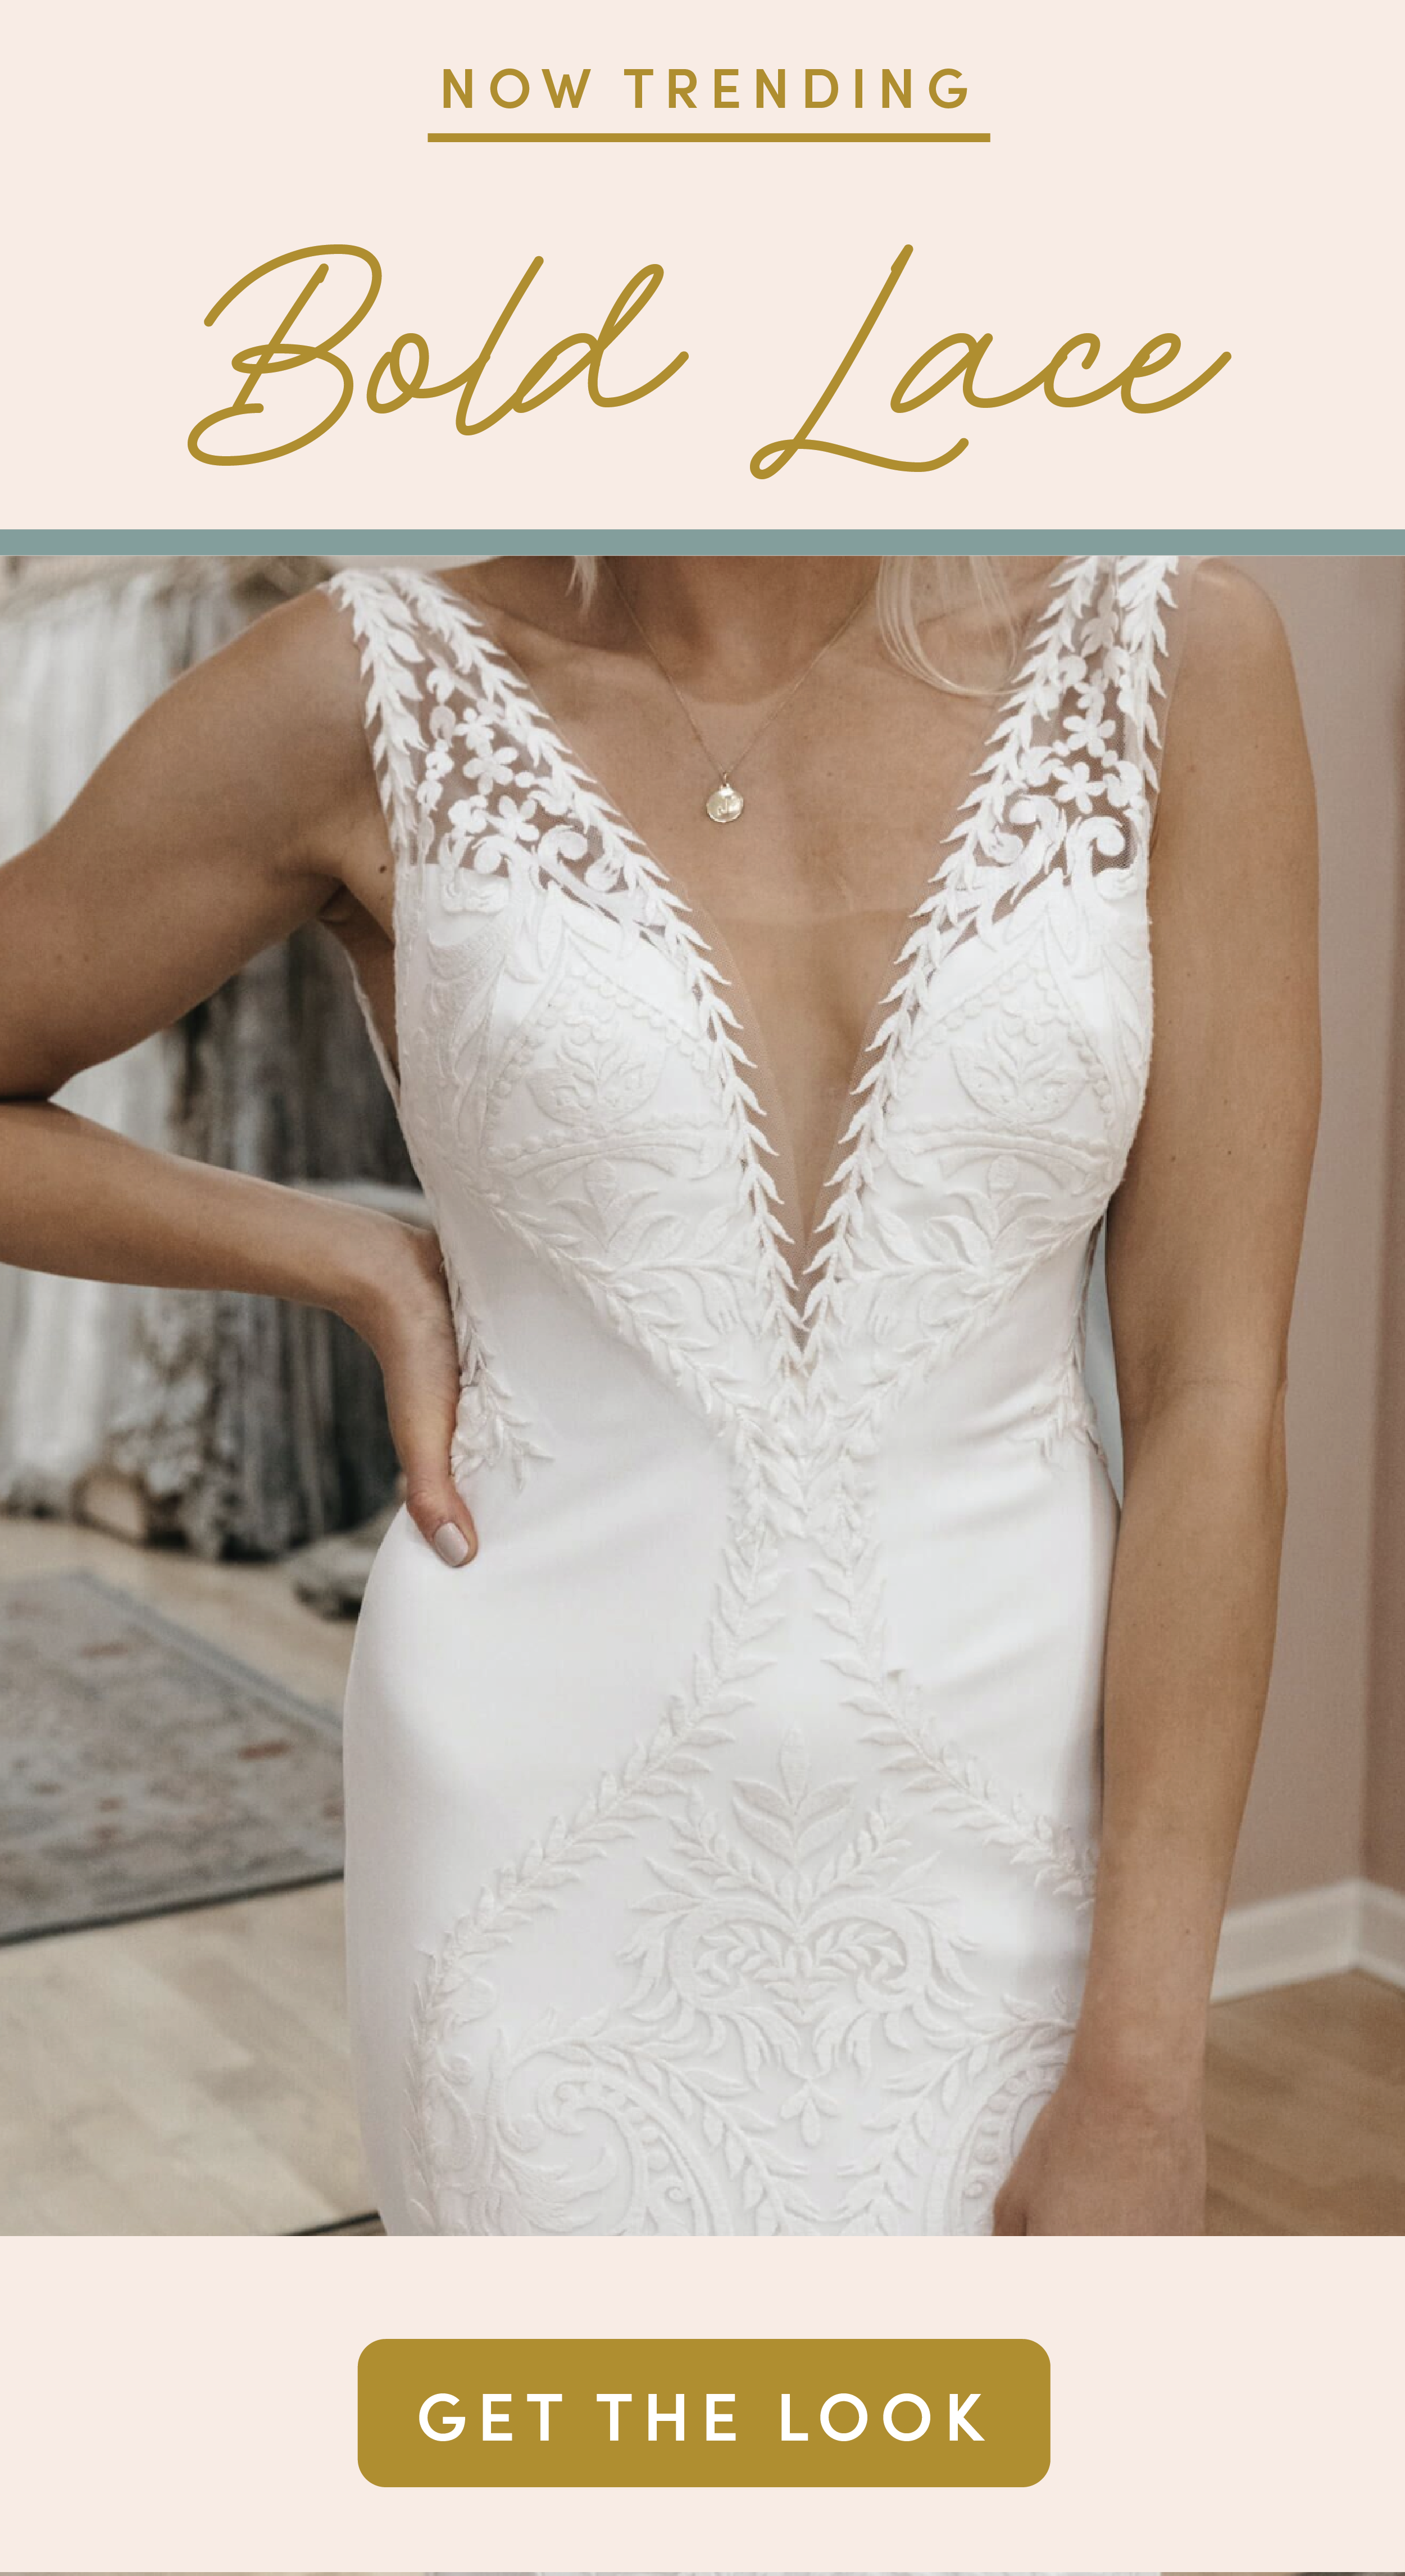 Bold, head-turning lace is one trend we're in love with – and it isn't going anywhere! Meet the 'Freja' from Lovers Society, with gorgeous all-over lace details. Click here to meet her and find her in-store! | lace wedding dress, bold lace wedding dress, unique wedding dress #weddingdress #lovelybride #bridetobe